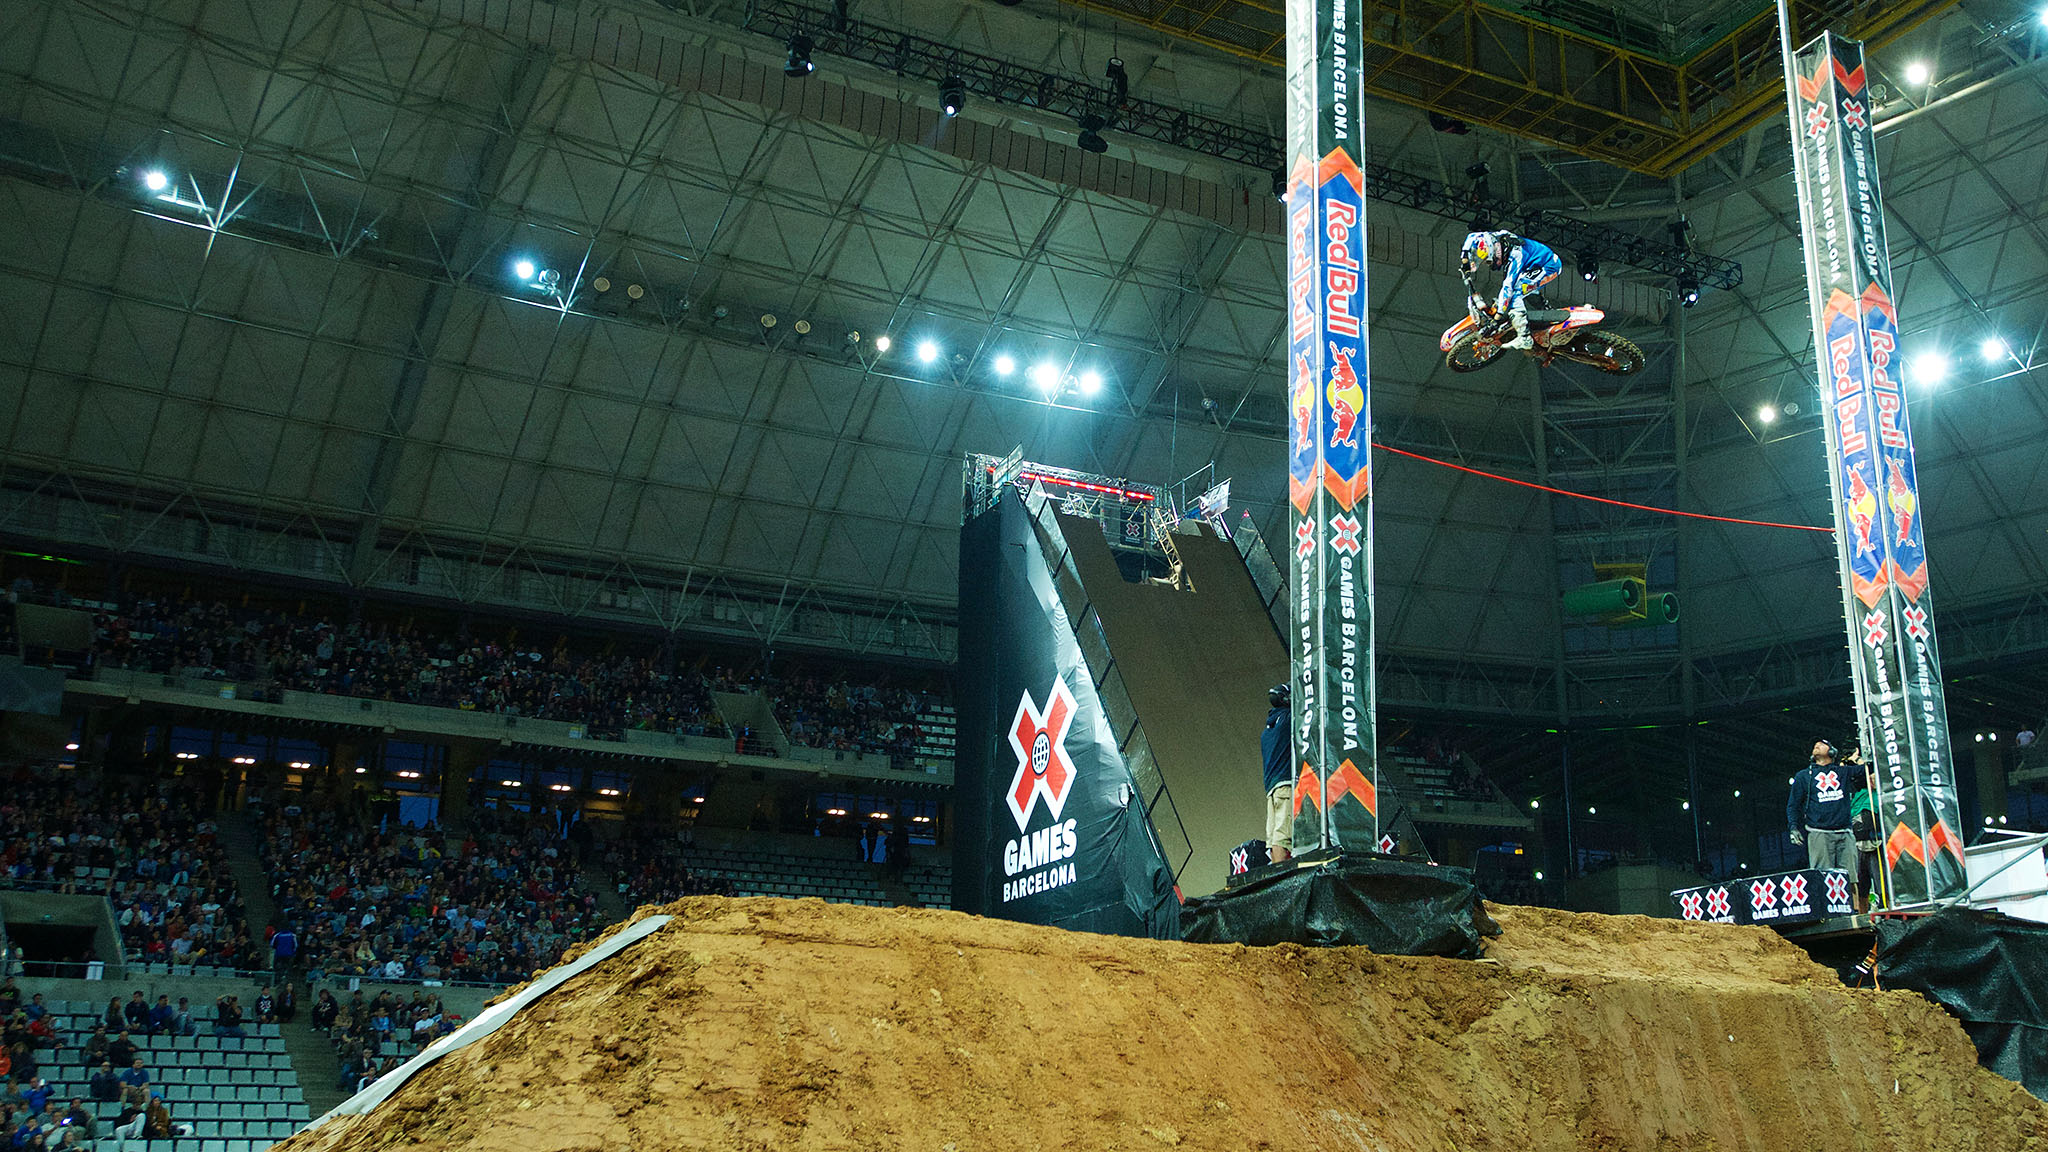 At 47 feet, Ronnie Renner holds the all-time height record in Moto X Step Up. He'll be revving for his fifth X Games Step Up gold on Friday.